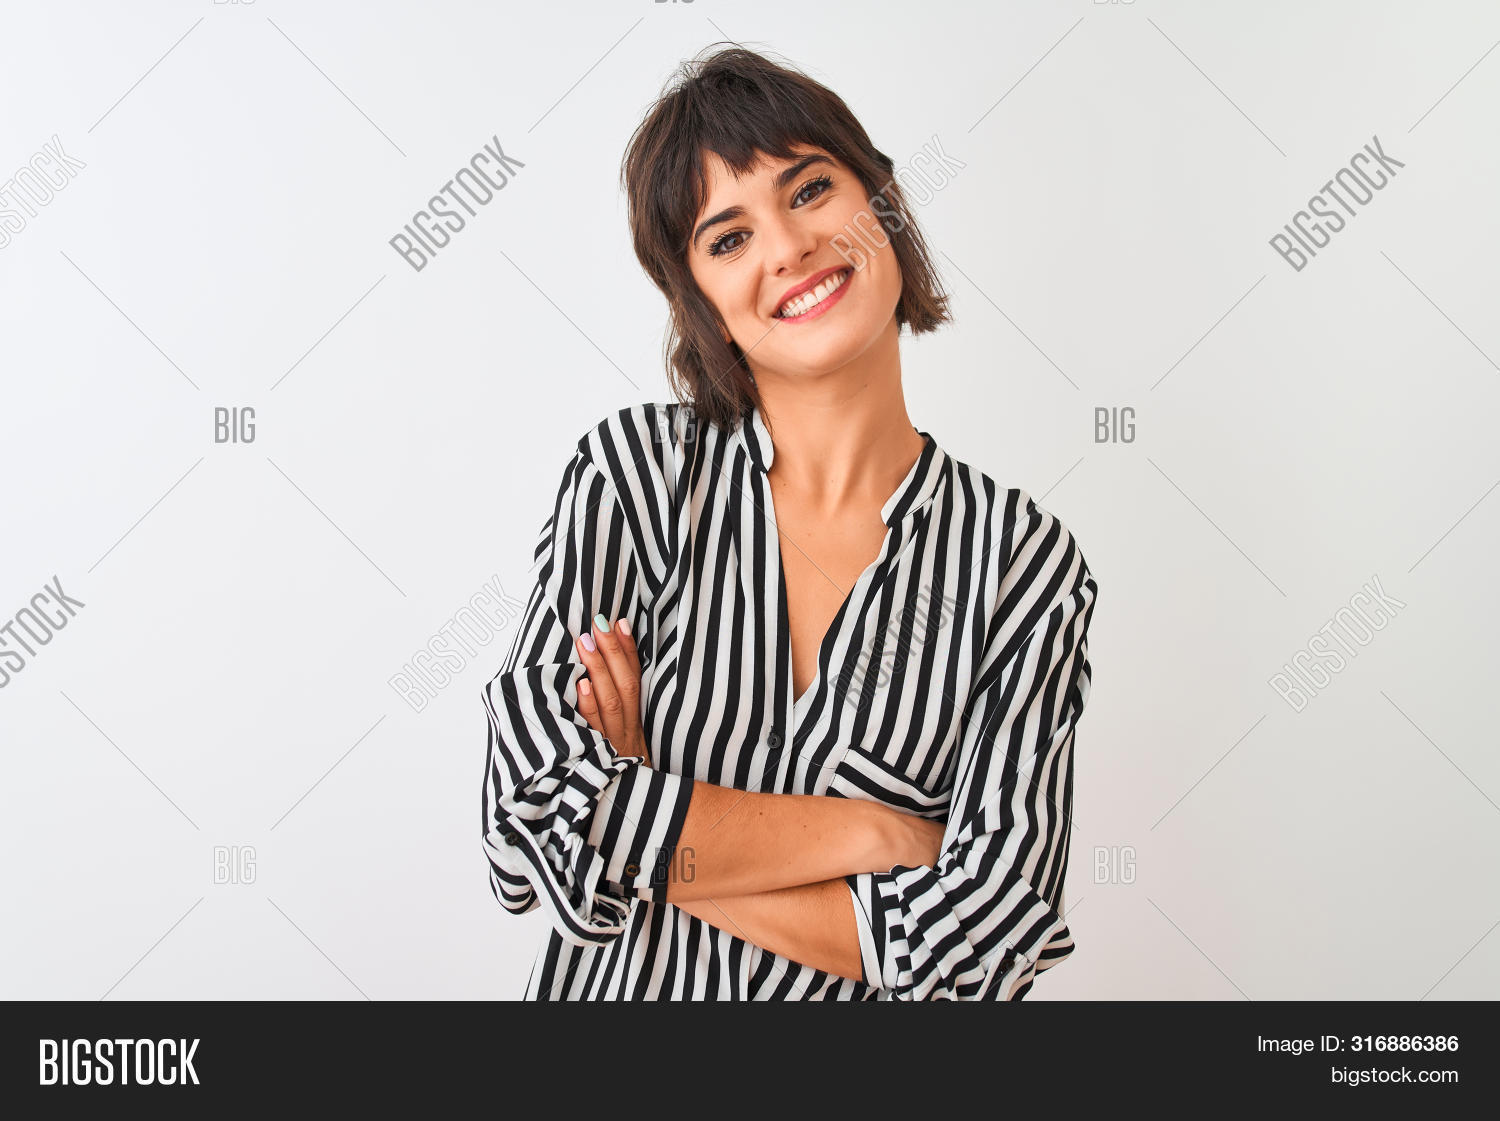 Young beautiful woman wearing striped shirt standing over isolated white background happy face smili